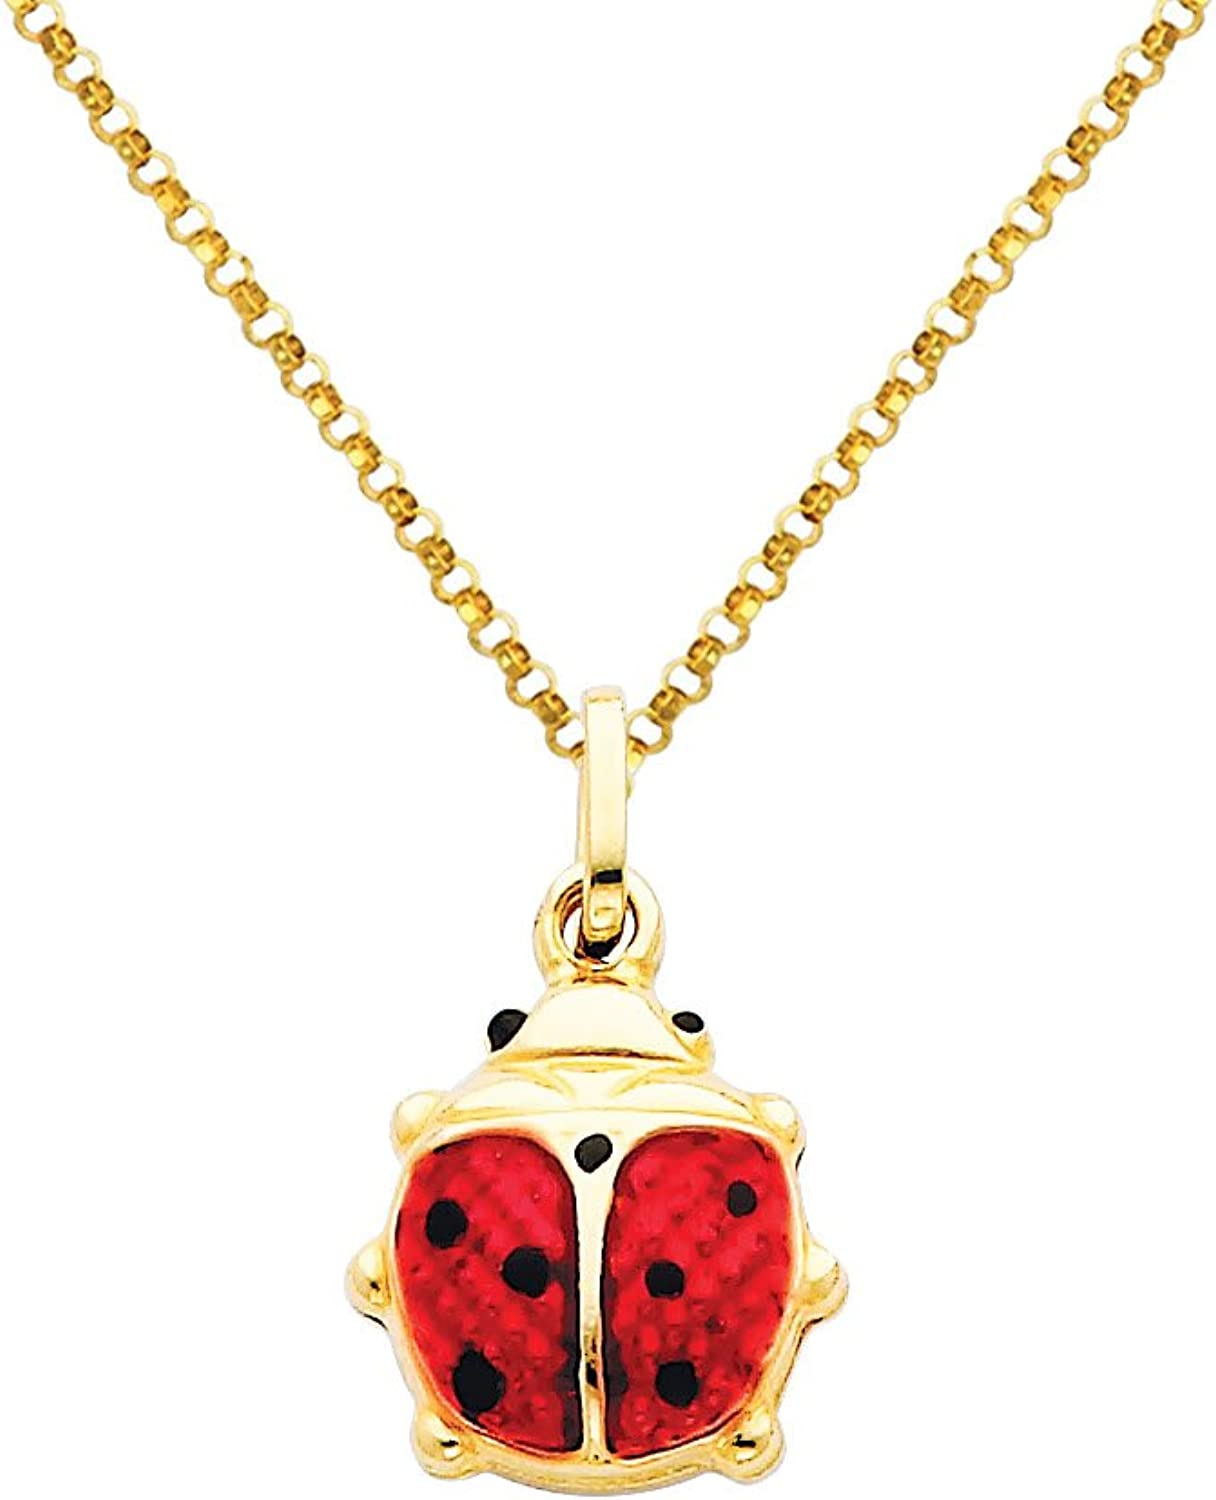 14k Yellow gold Lady Bug Enamel Charm Pendant with 1.2mm Classic Rolo Cable Chain Necklace